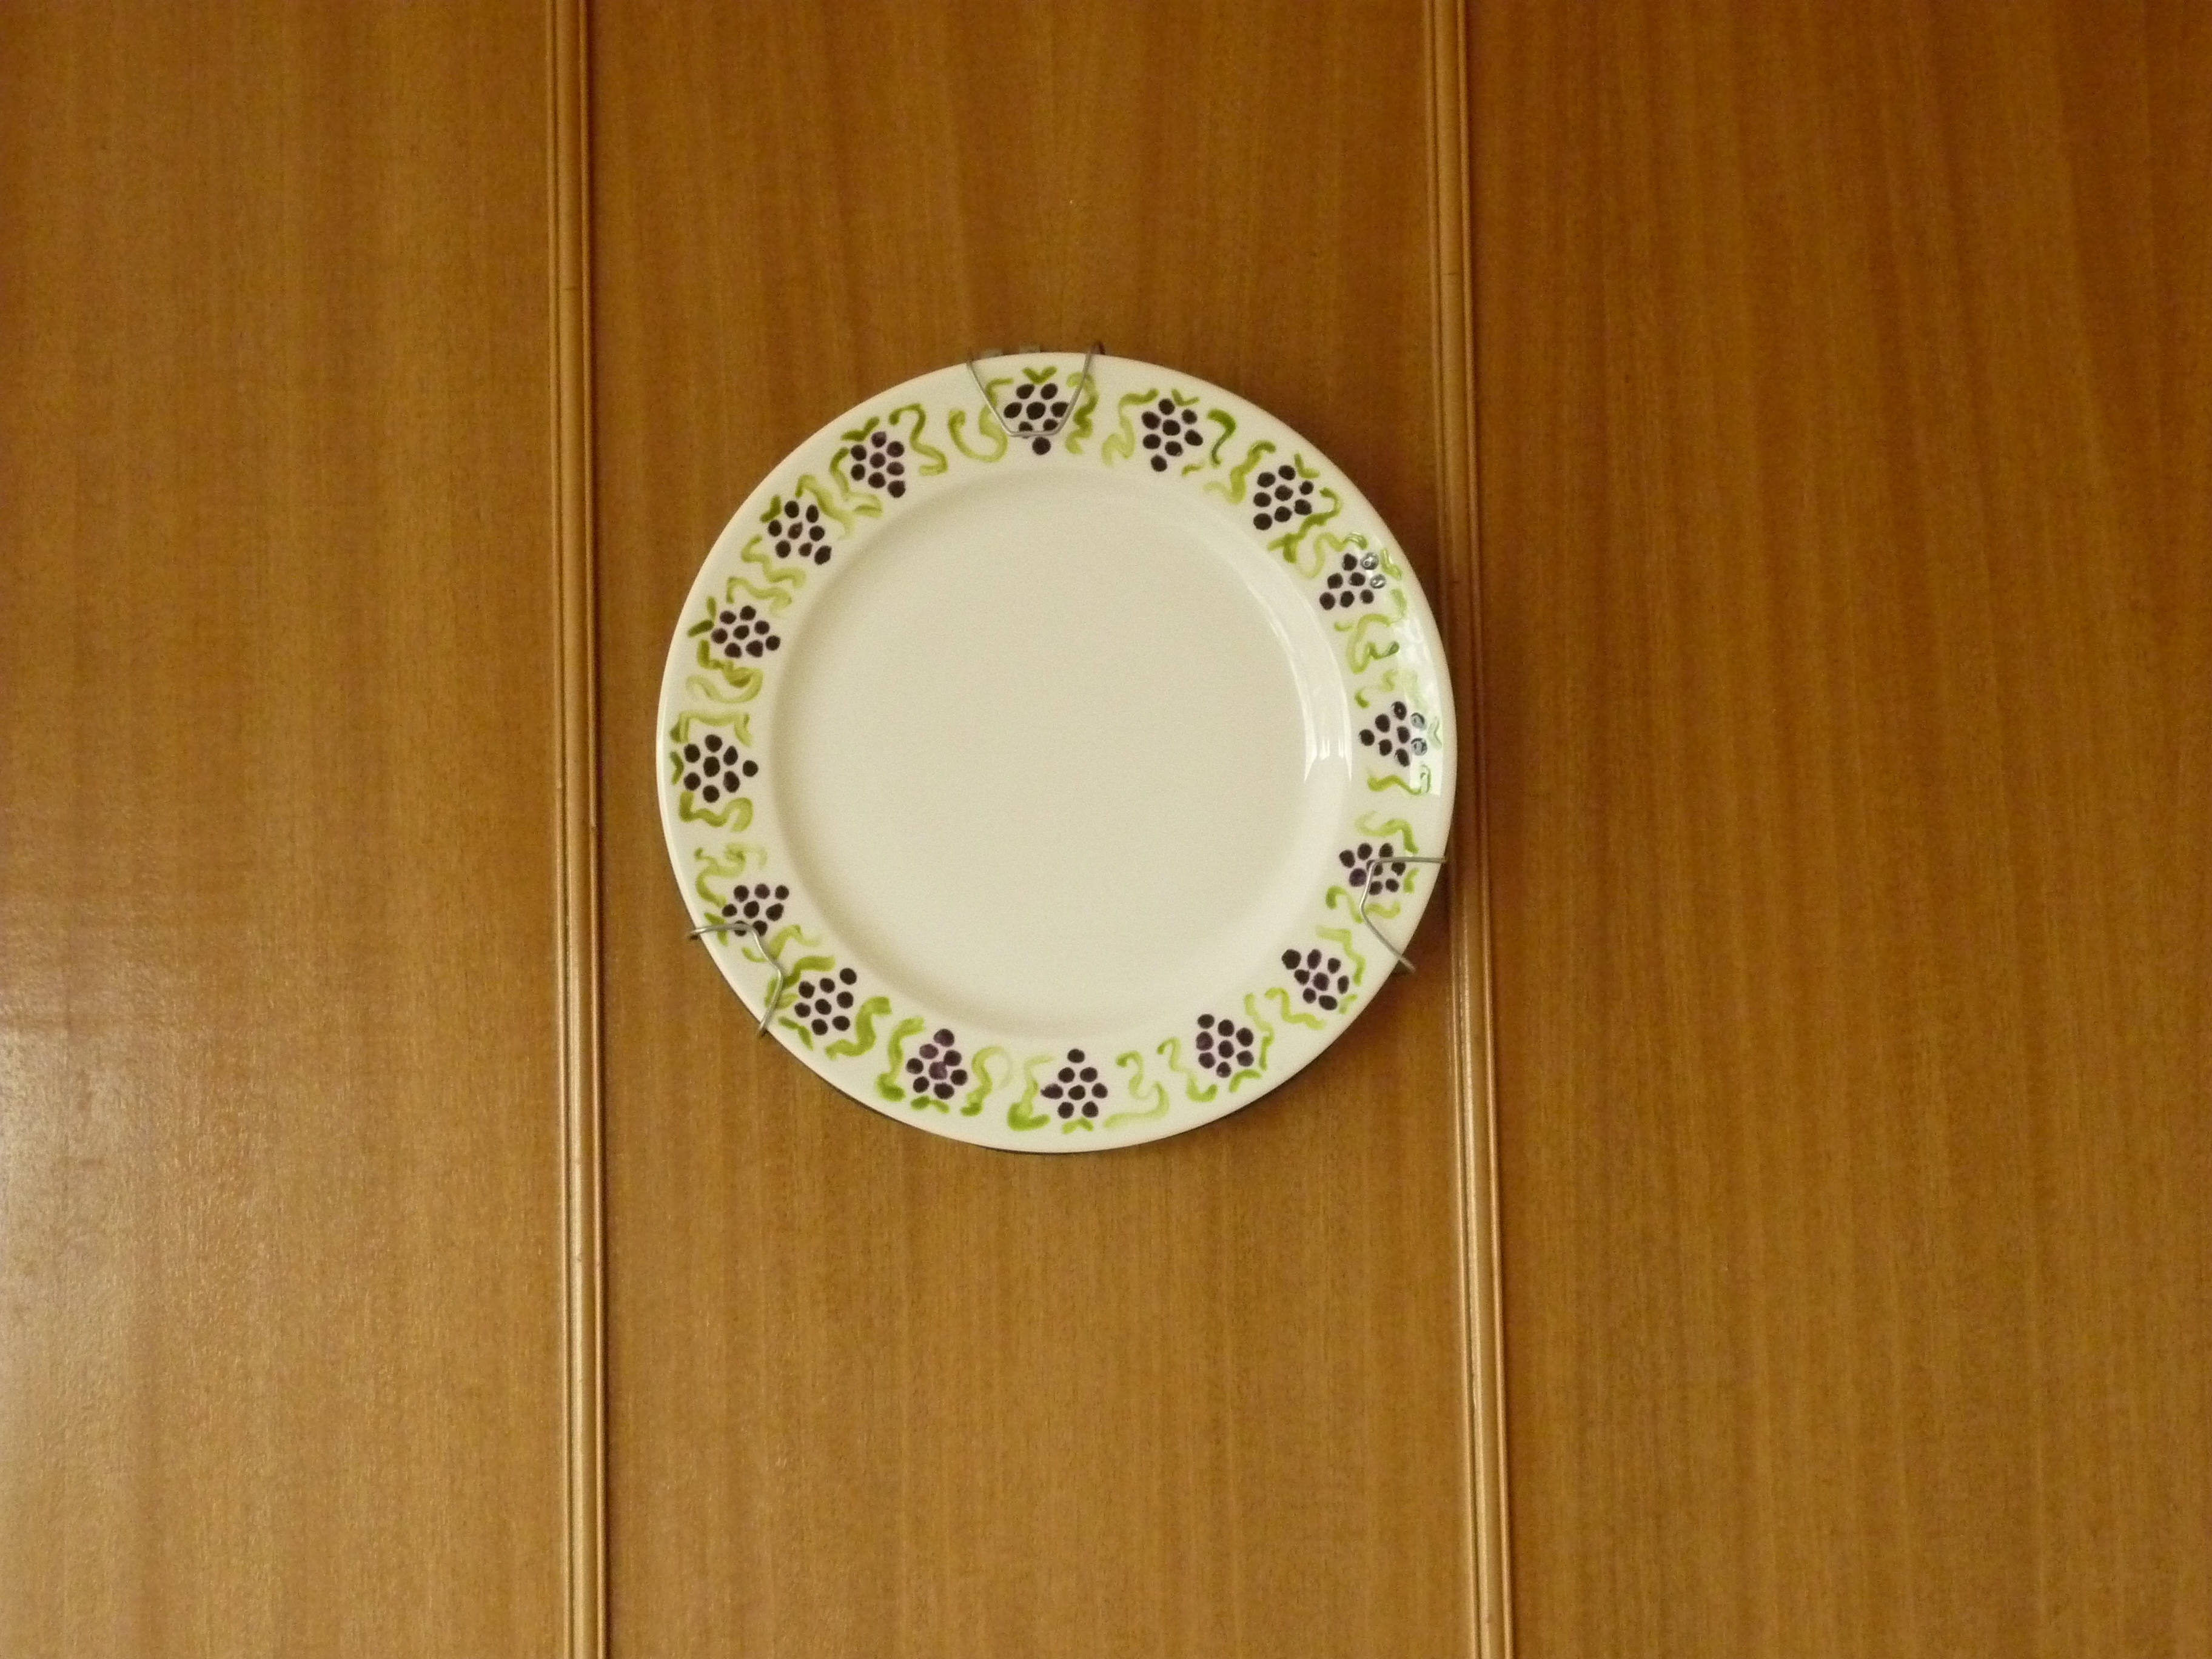 Picture of Hang a Plate on the Wall